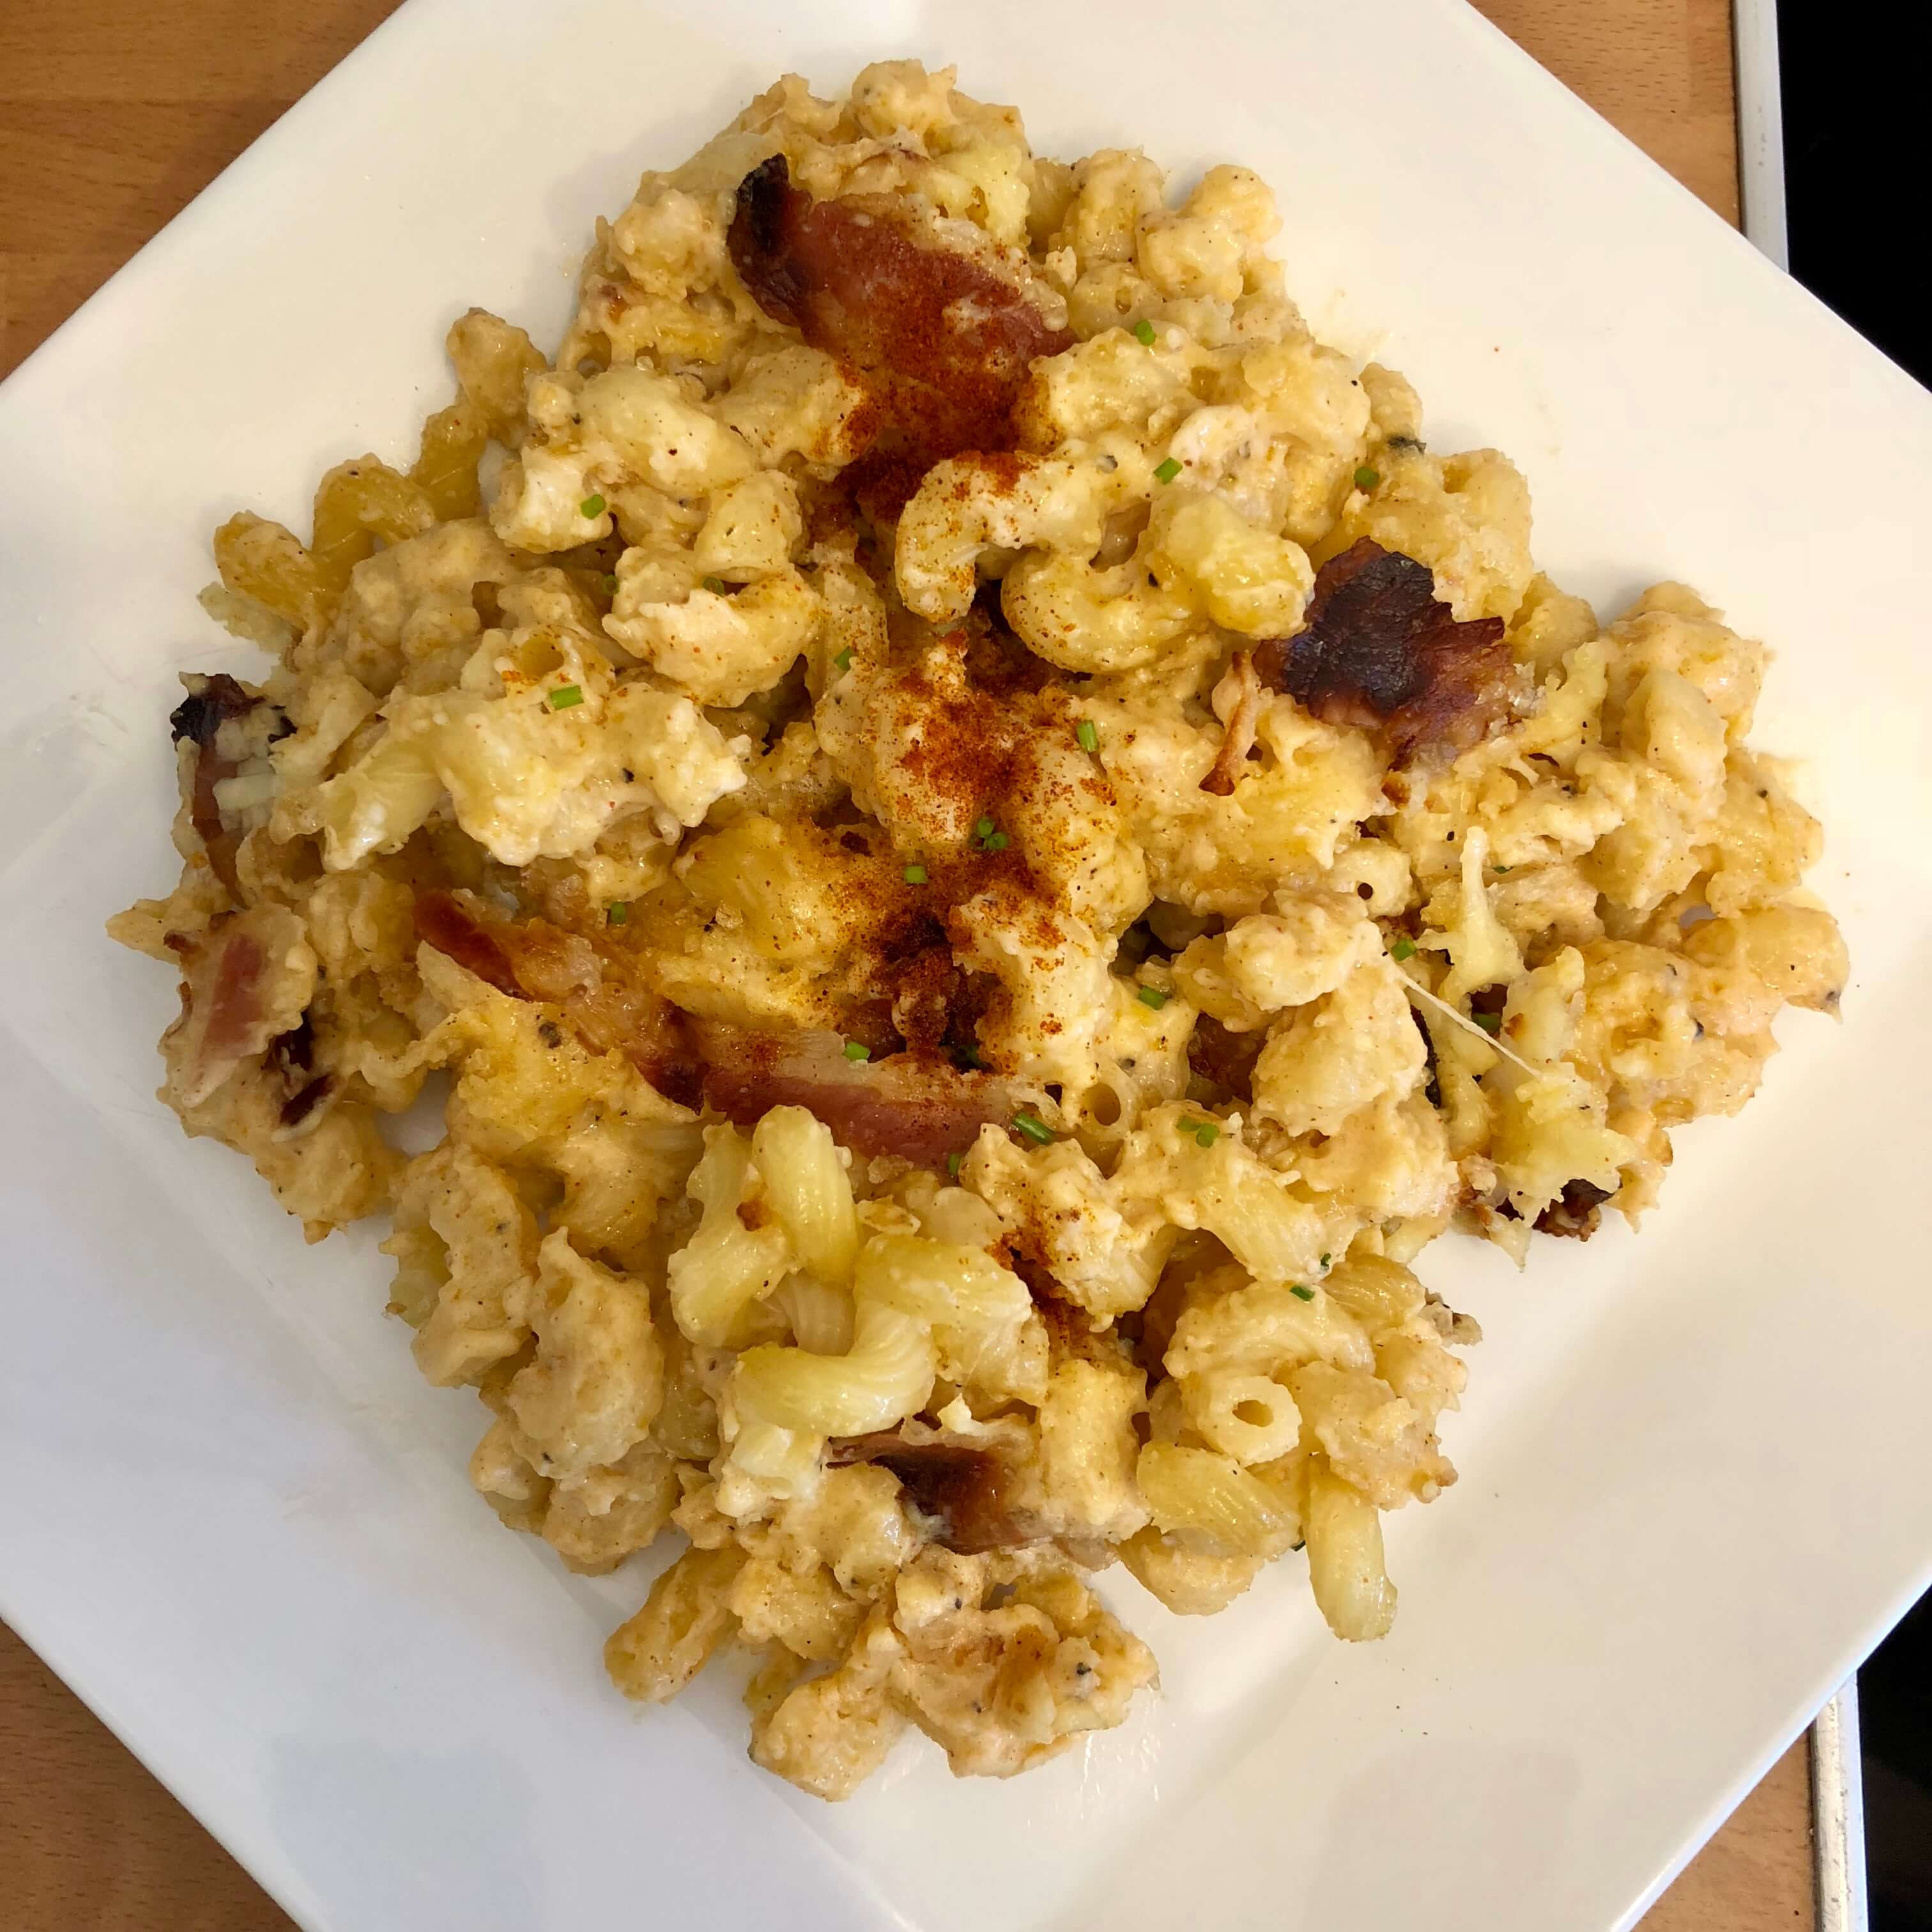 Nate's Epic Mac & Cheese Recipe